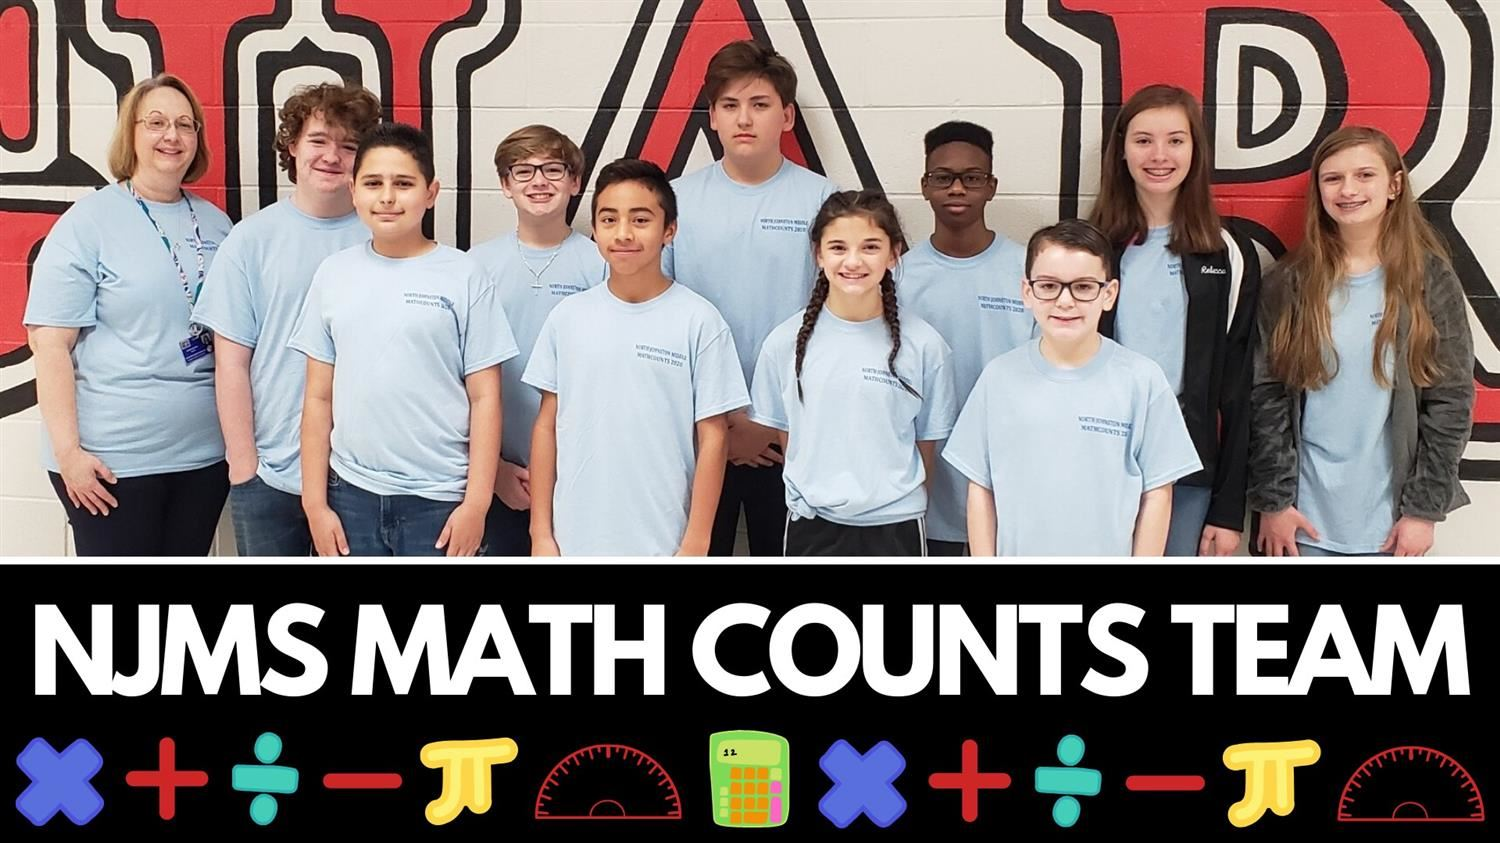 MATHCOUNTS TEAM COMPETES IN DISTRICT COMPETITION